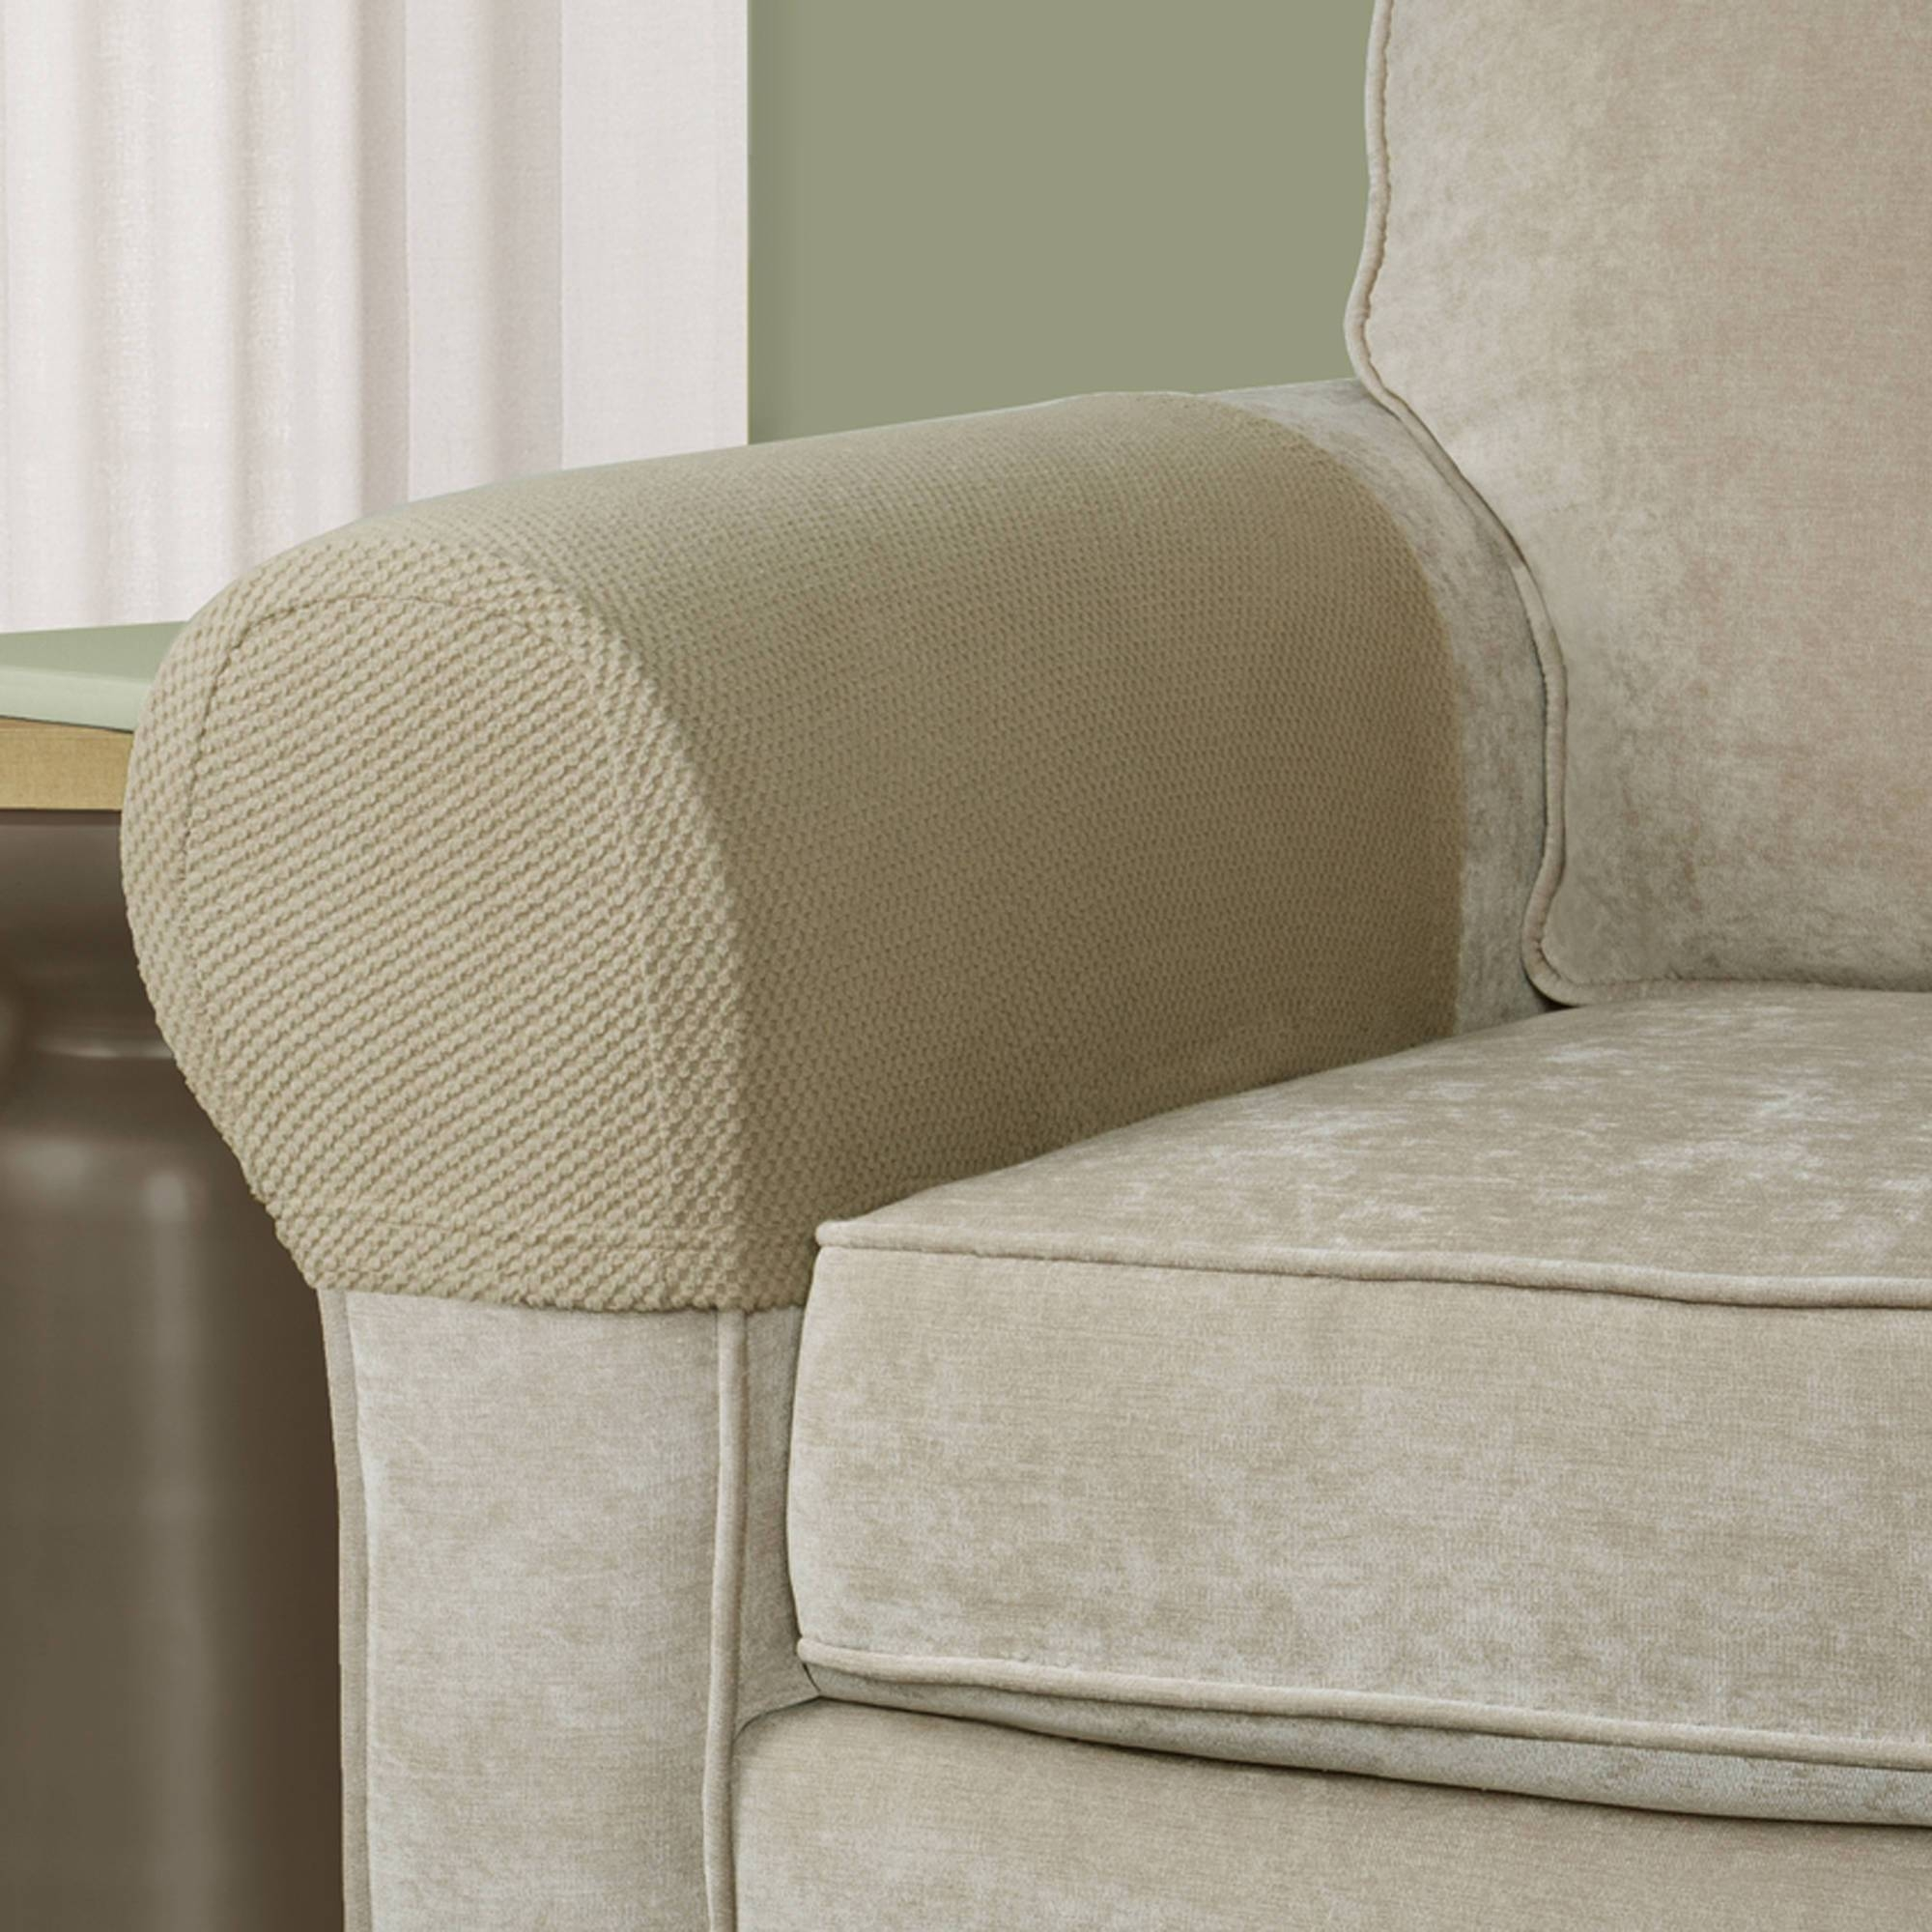 Mainstays Pixel Stretch Fabric Furniture Armrest Covers - Walmart intended for Sofa Settee Covers (Image 20 of 30)